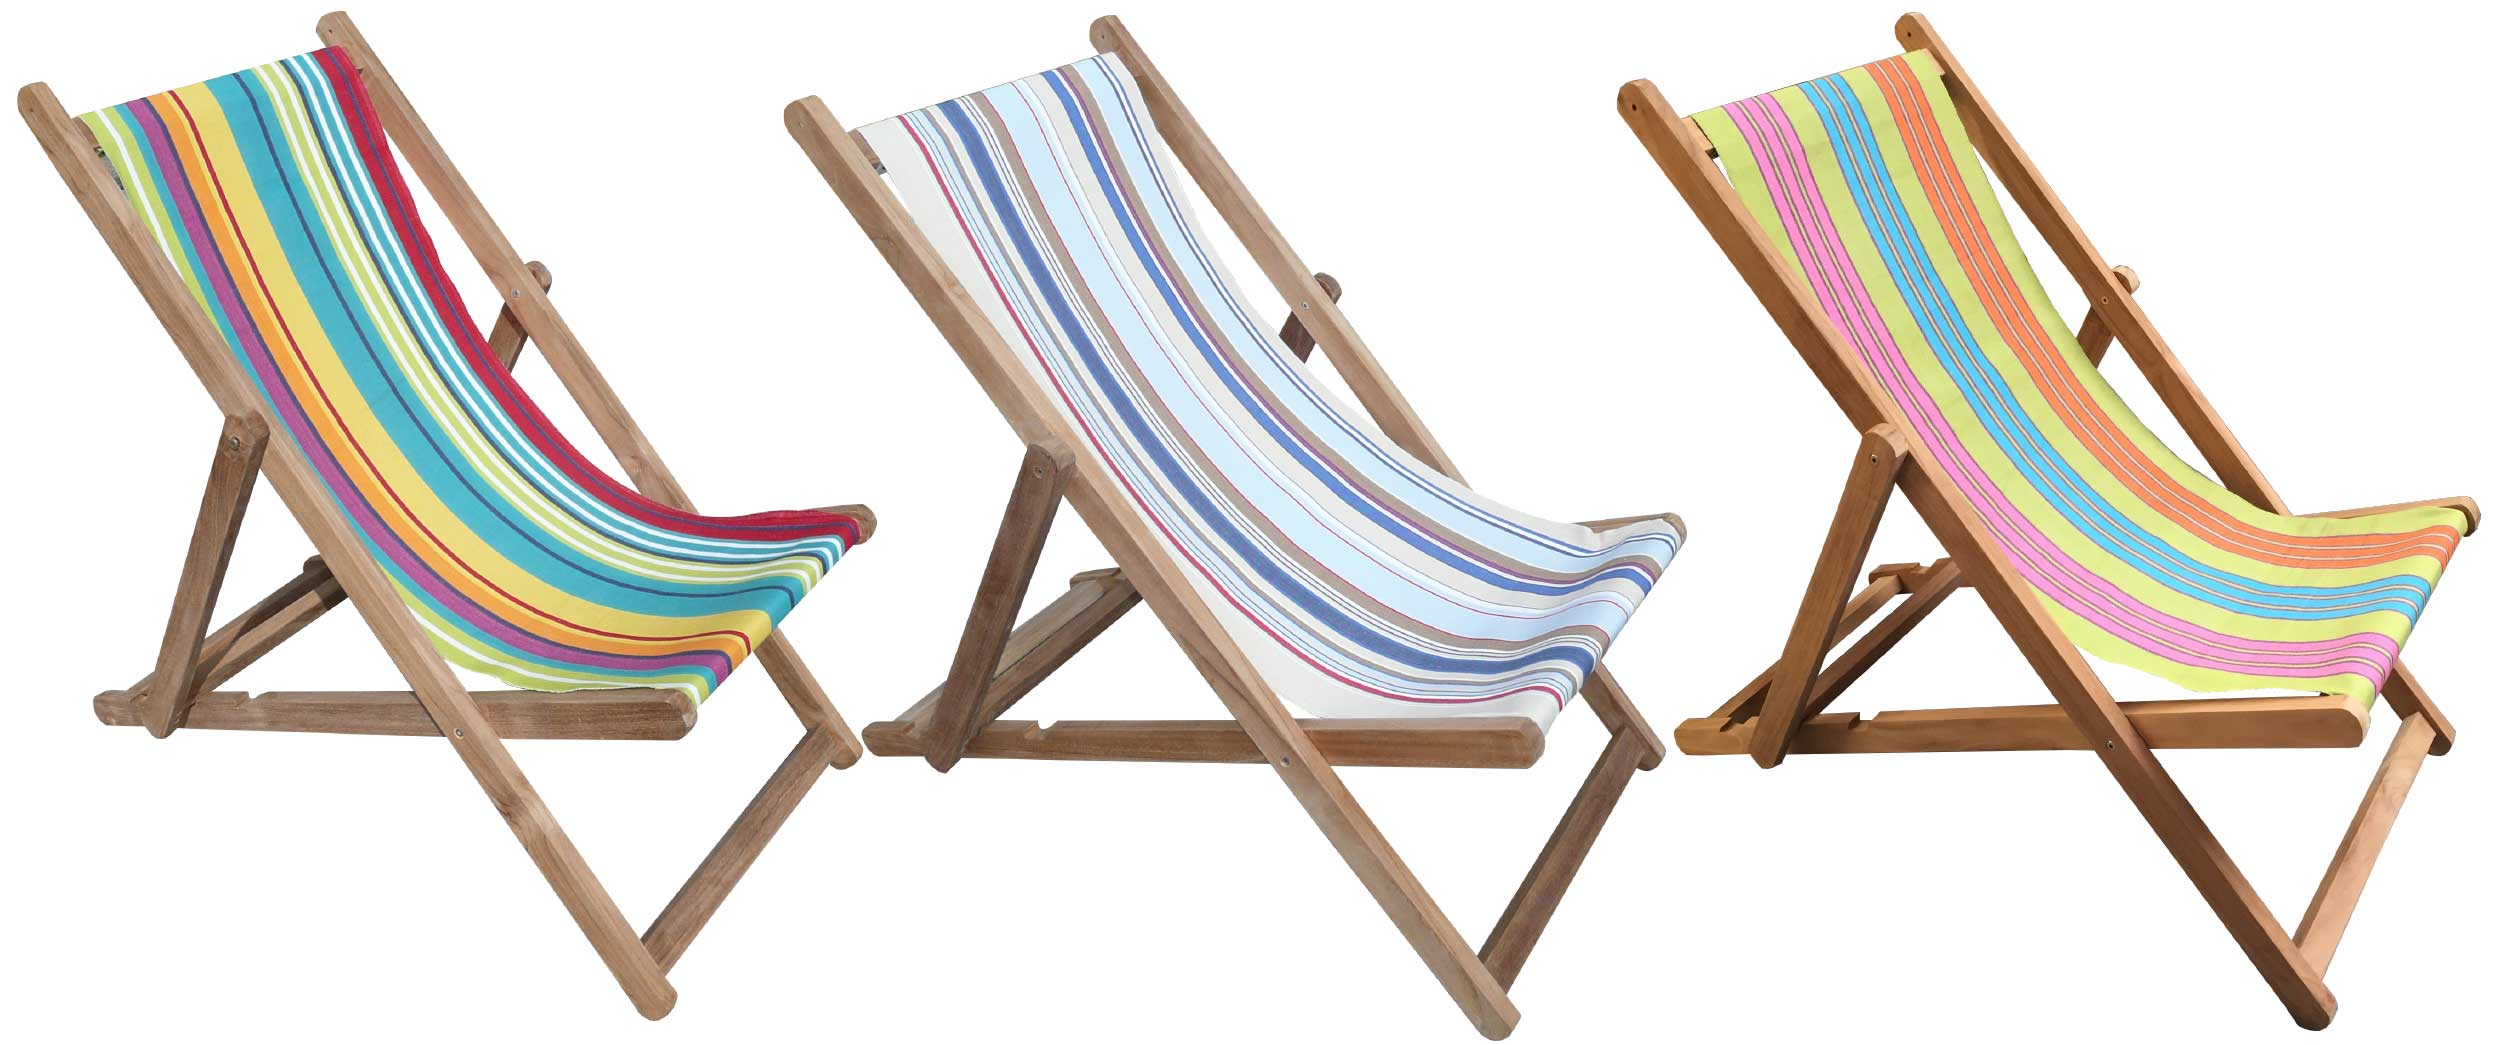 Hanging Deck Chairs